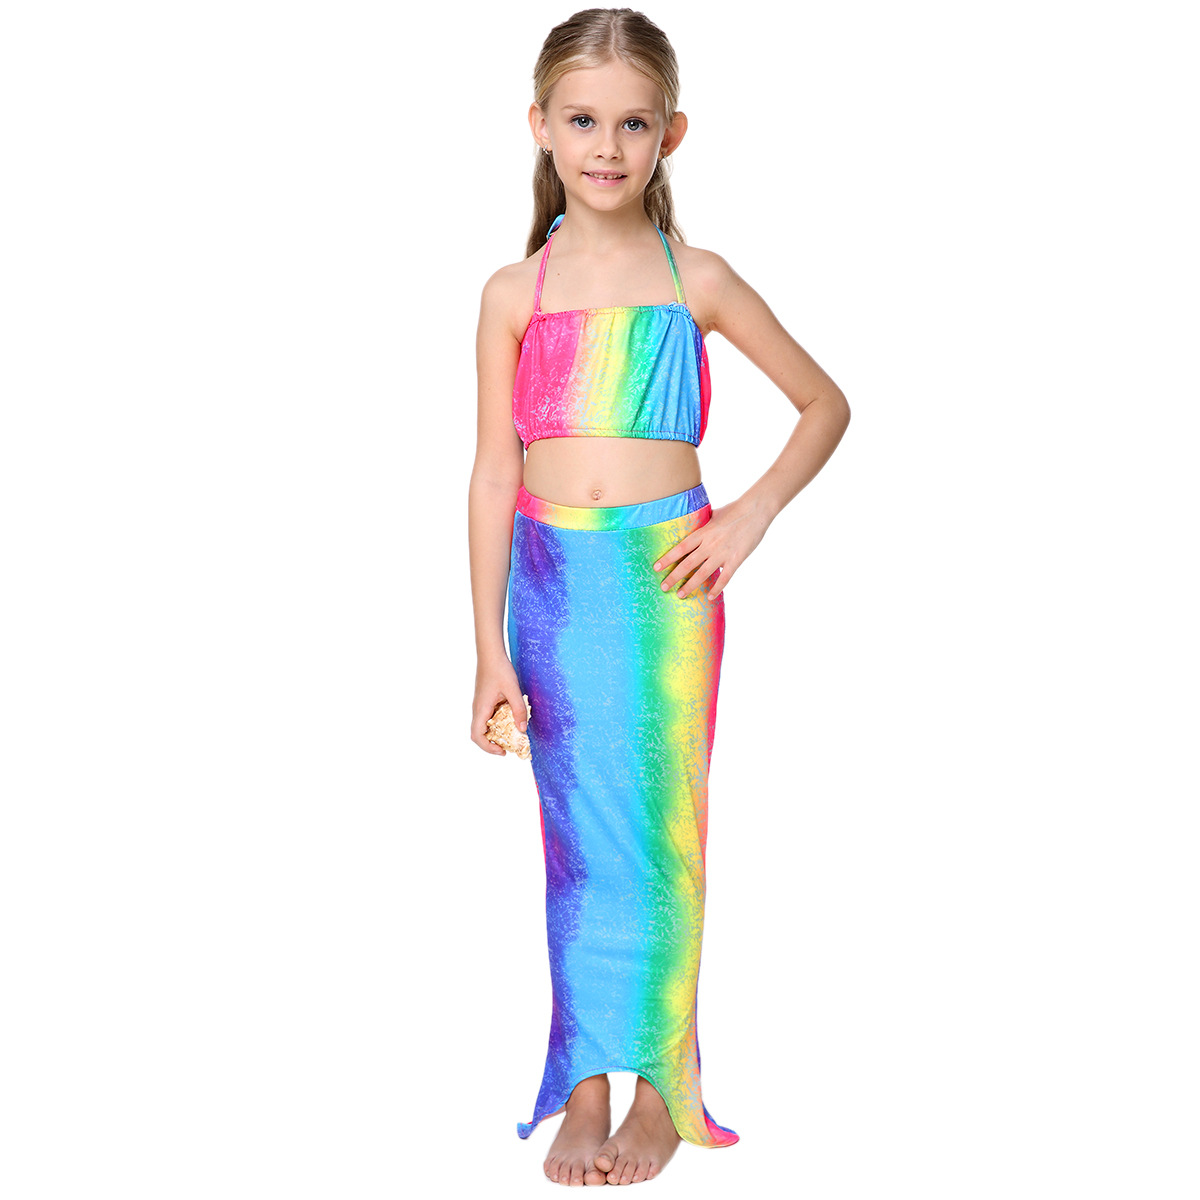 ec73b42bdb 2019 10 Styles New Girls Bikini Kids Swimwear Baby Girls Mermaid ...